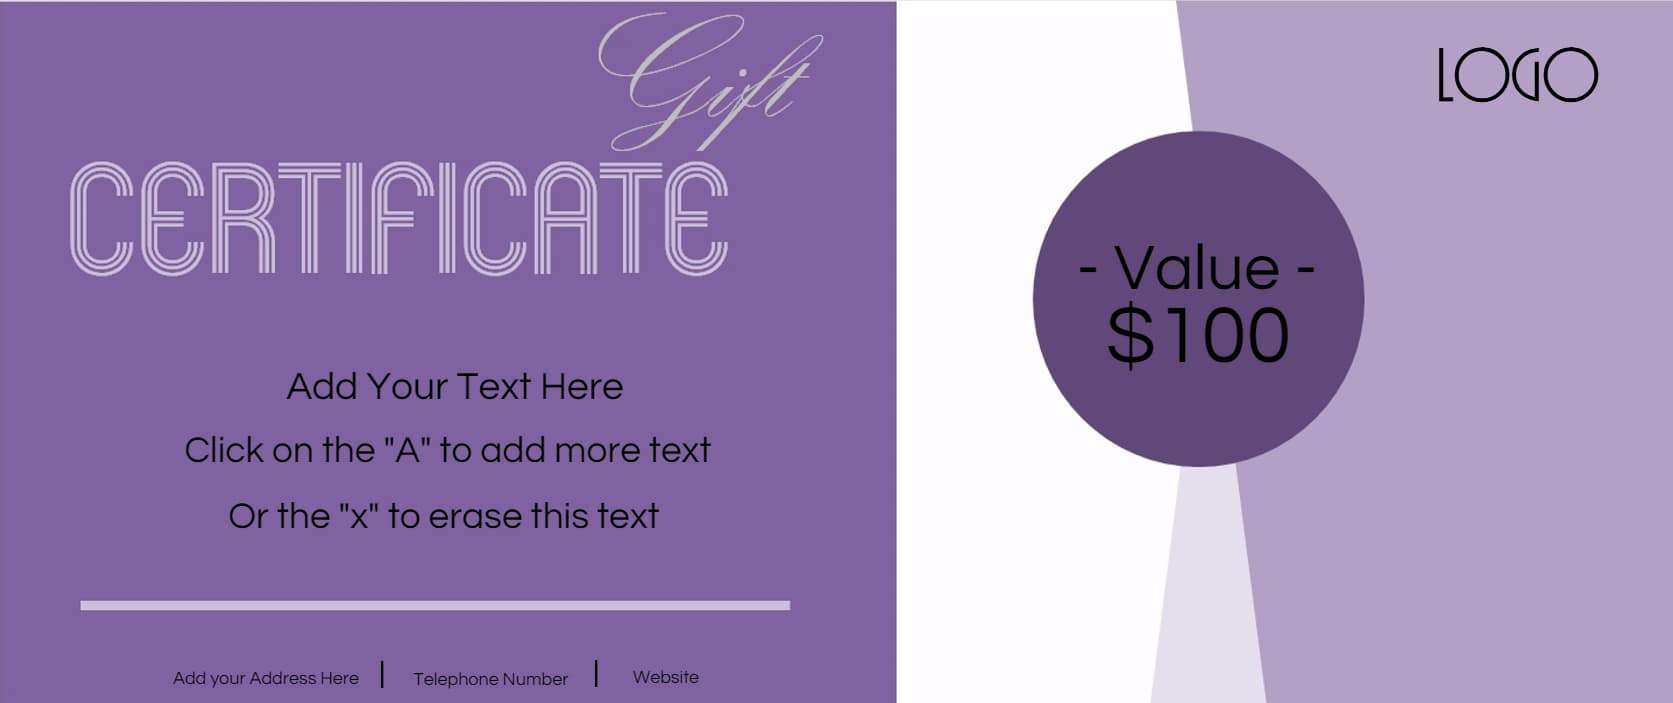 Gift certificate template with logo shades of purple xflitez Choice Image